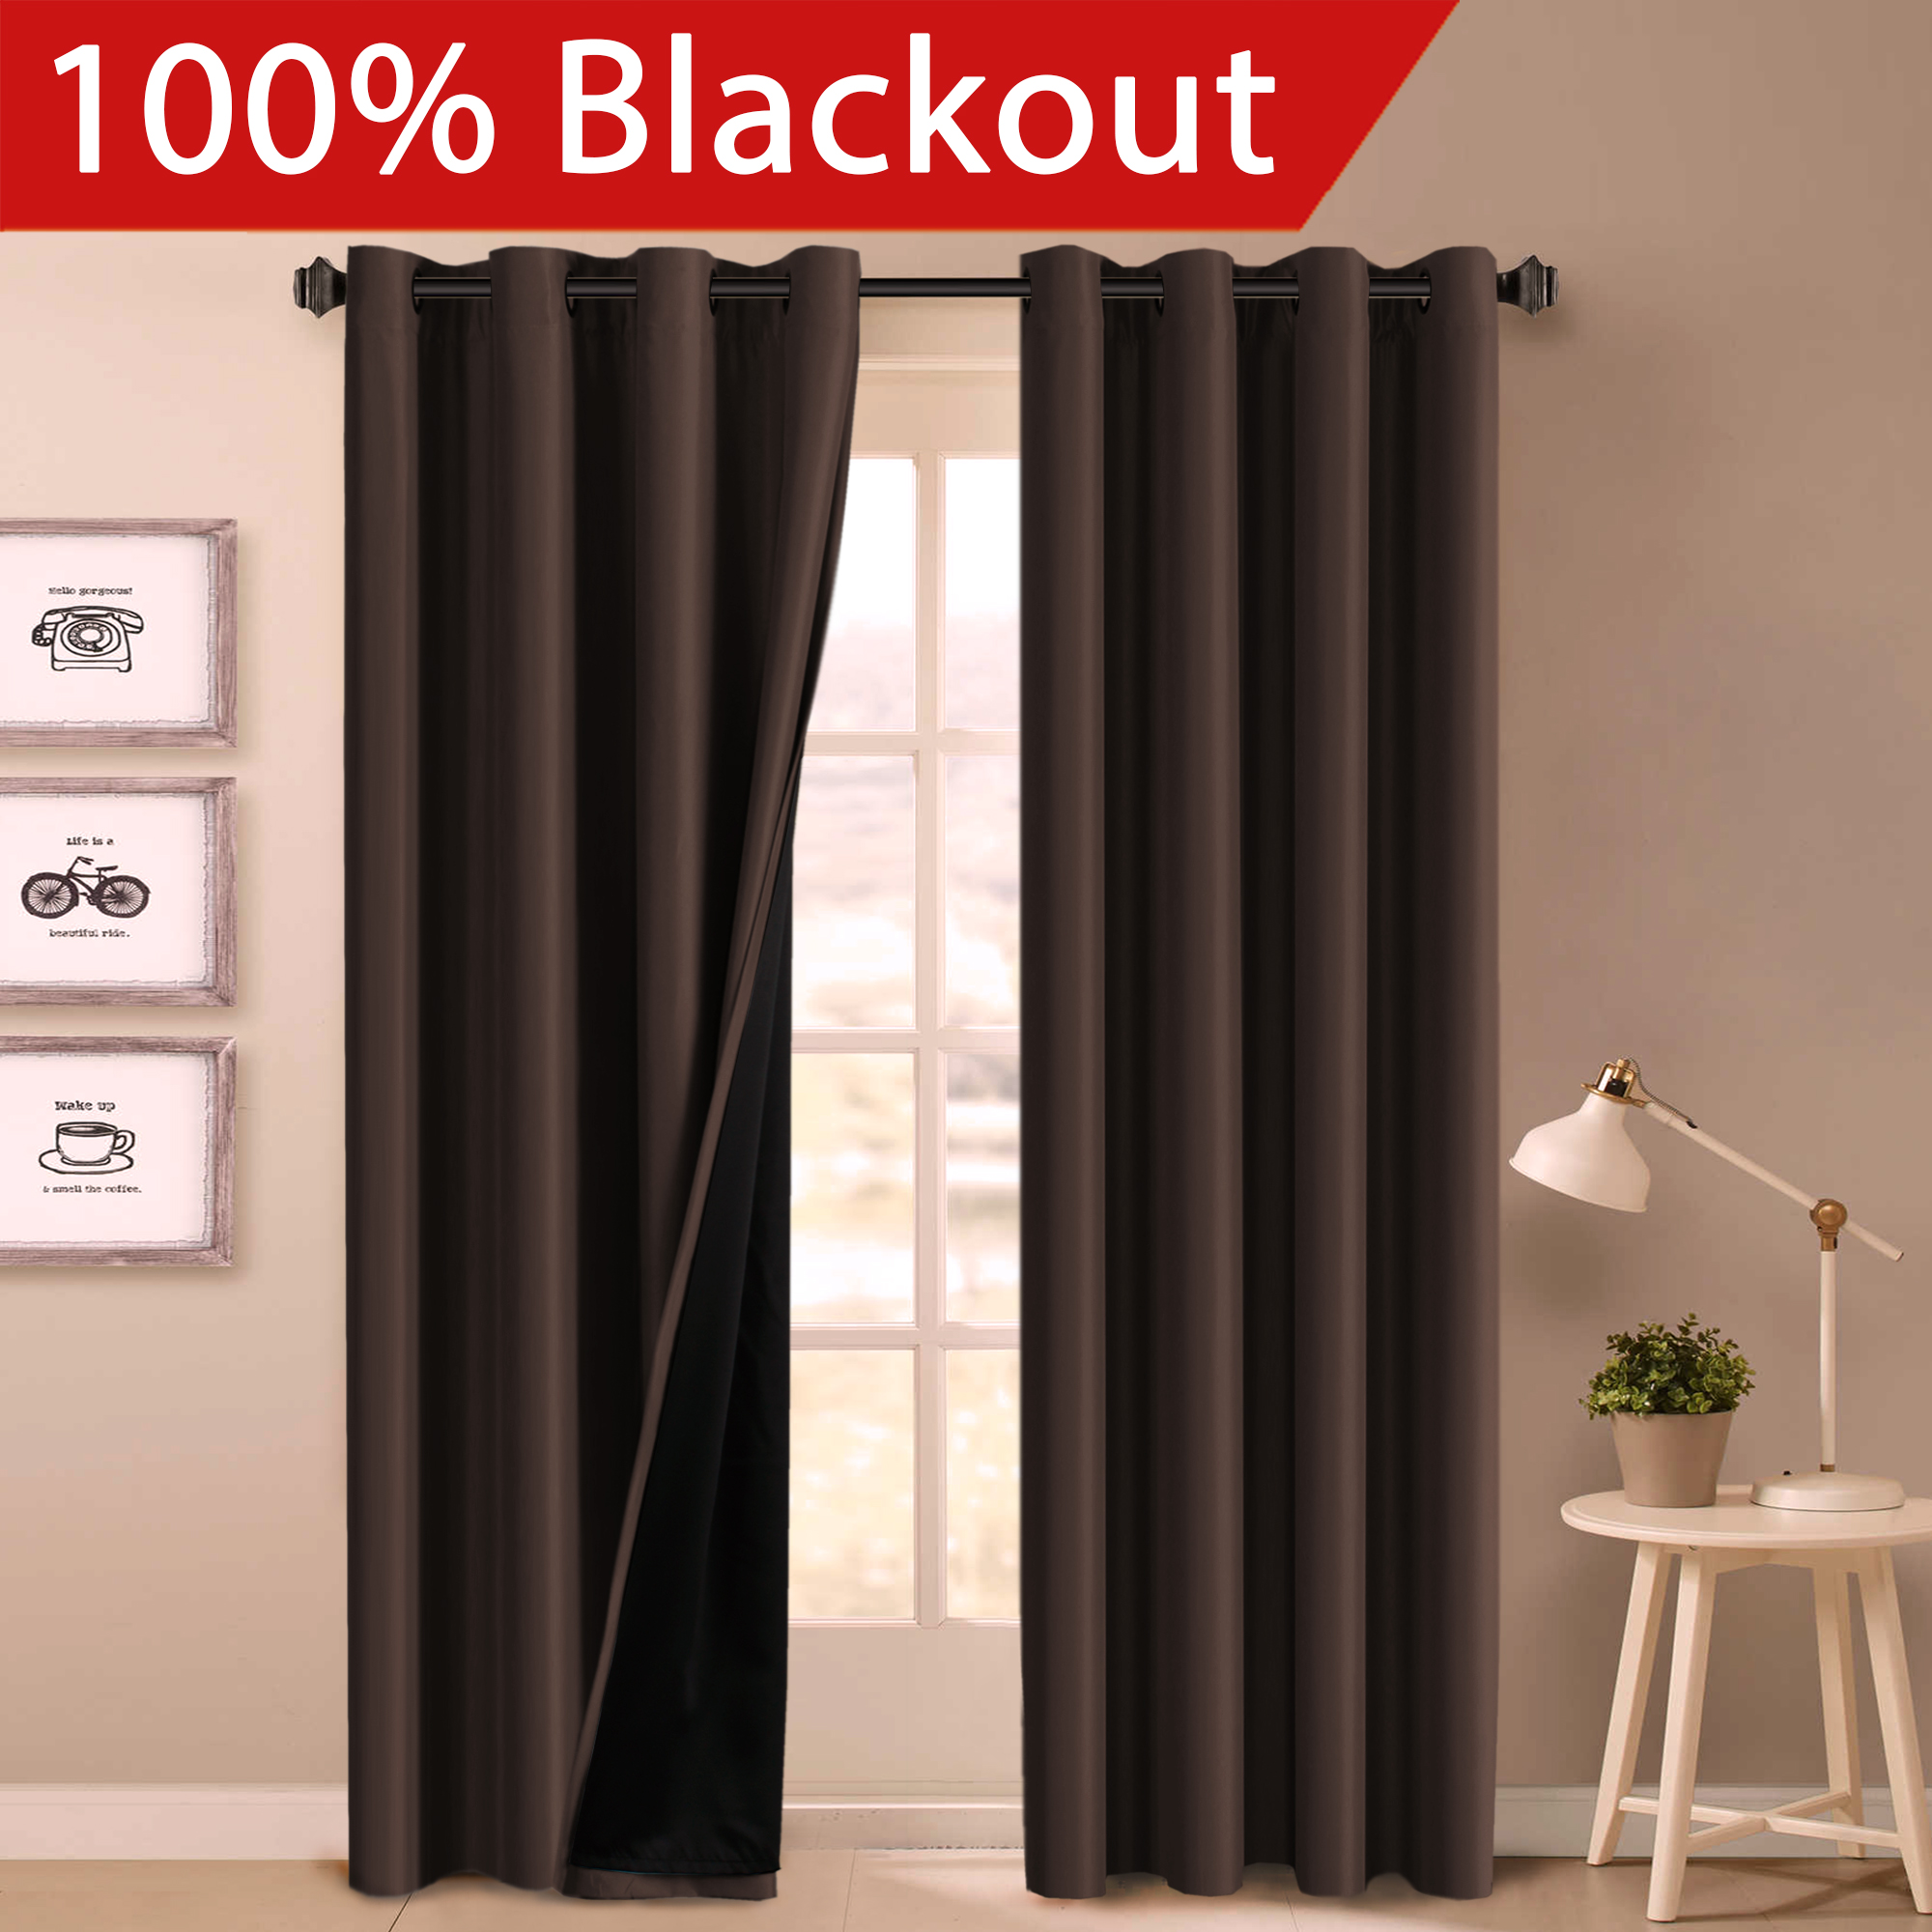 100% BLACKOUT Curtain Set, Thermal Insulated & Energy Efficiency Window Drapery, Lined Silky Performance, Dove Gray Color, Grommet, Set of 2 , W52 x L108